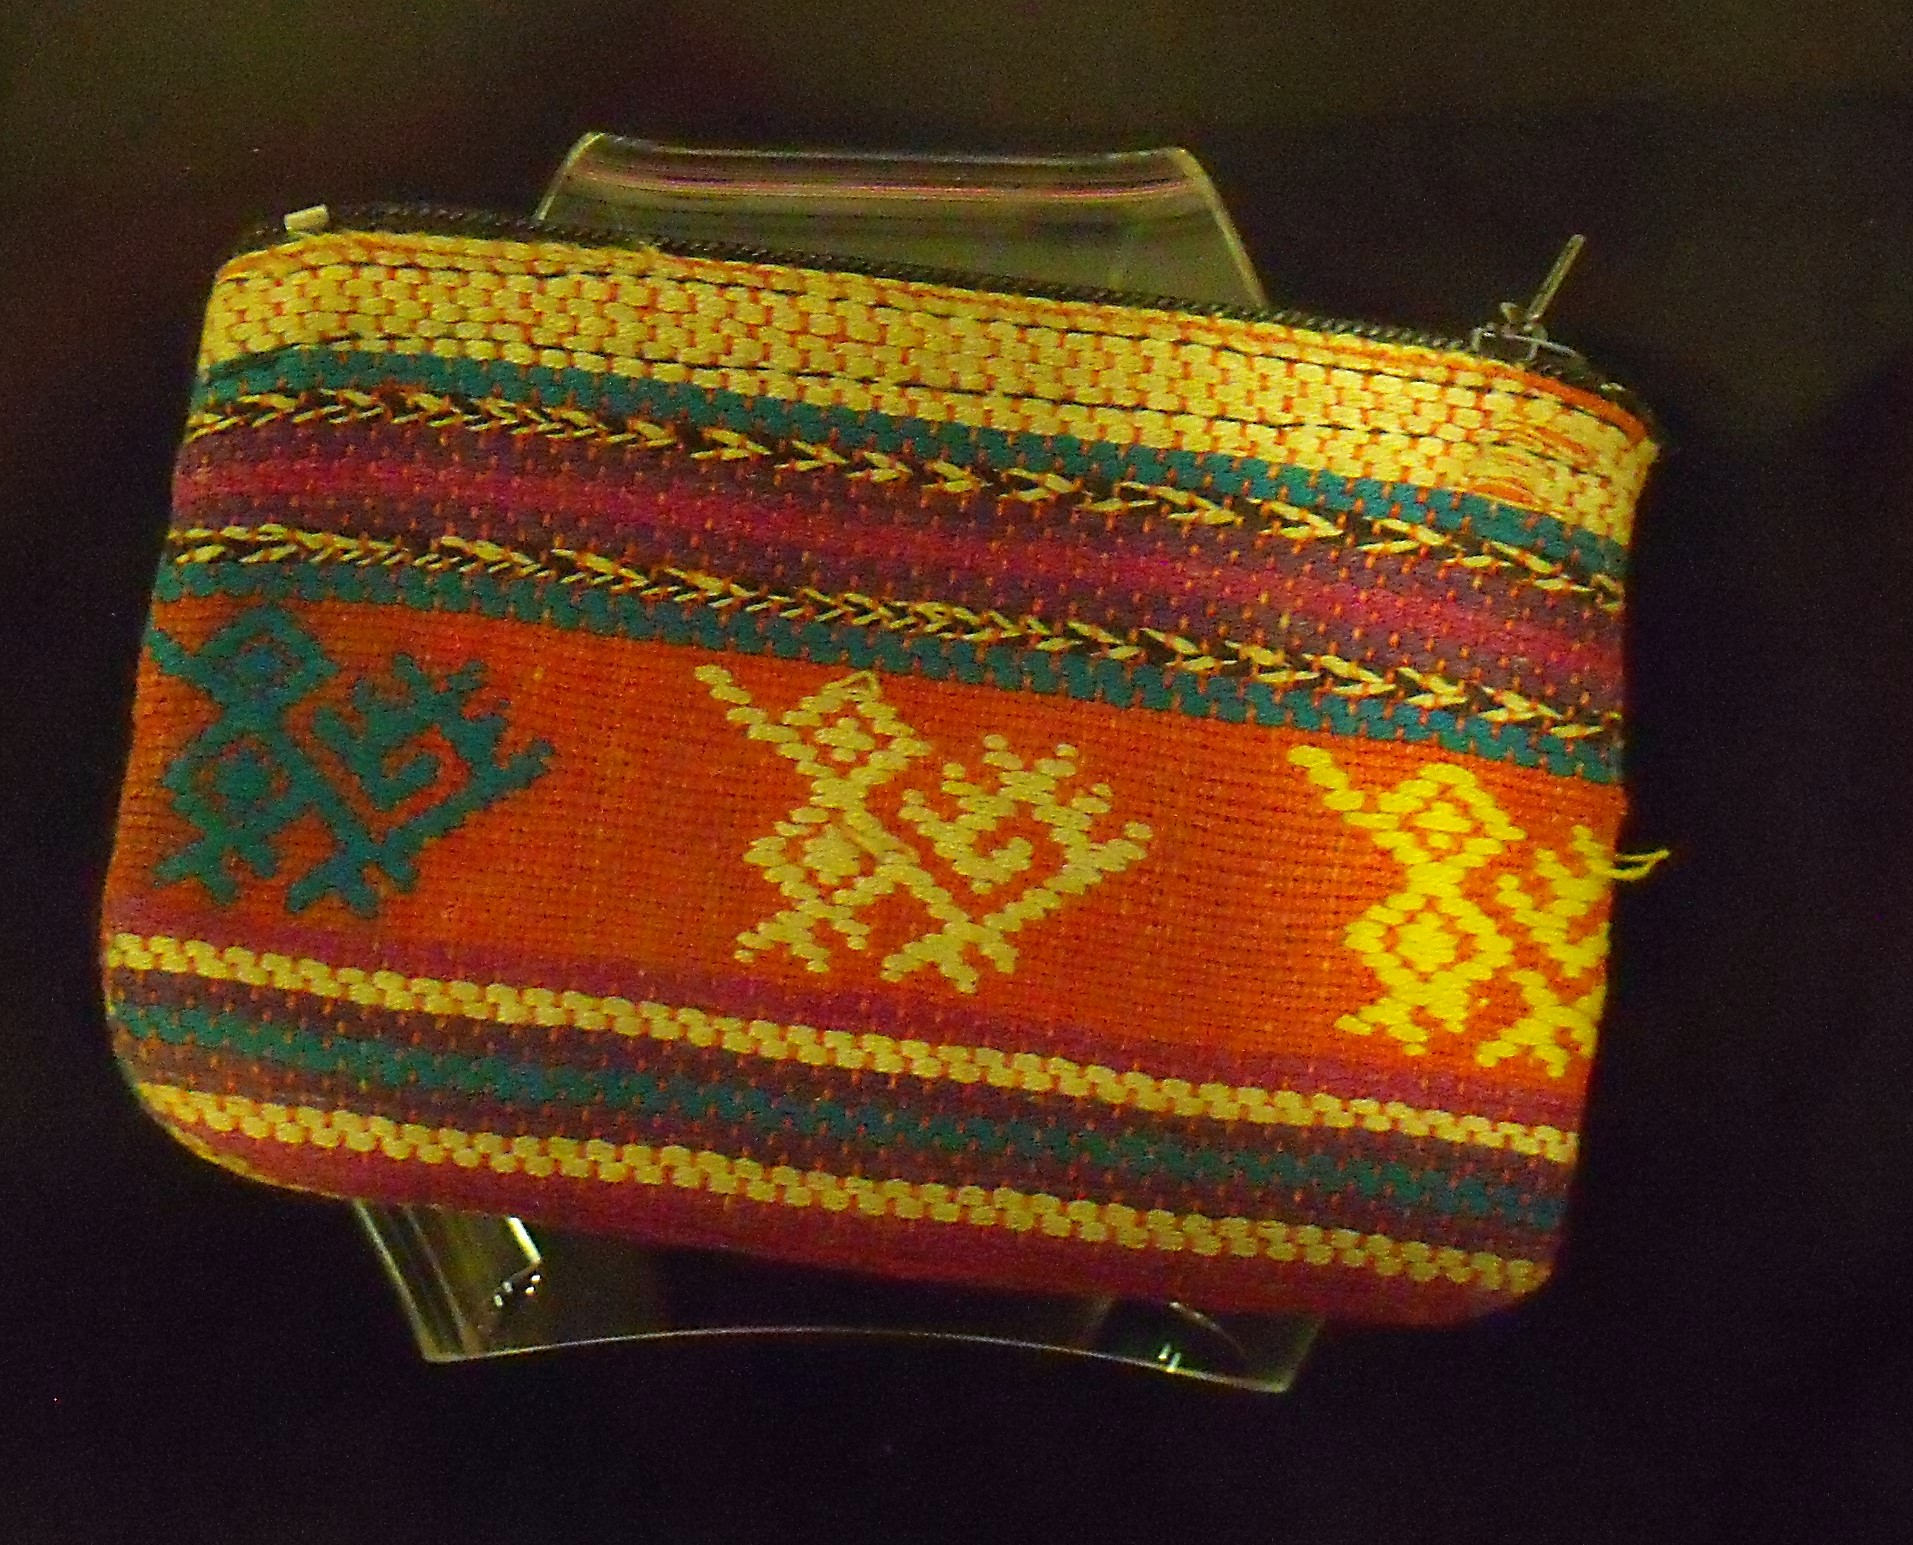 Purse of Hand-Woven Cloth with Embroidery, Researched by Stephenie Walker